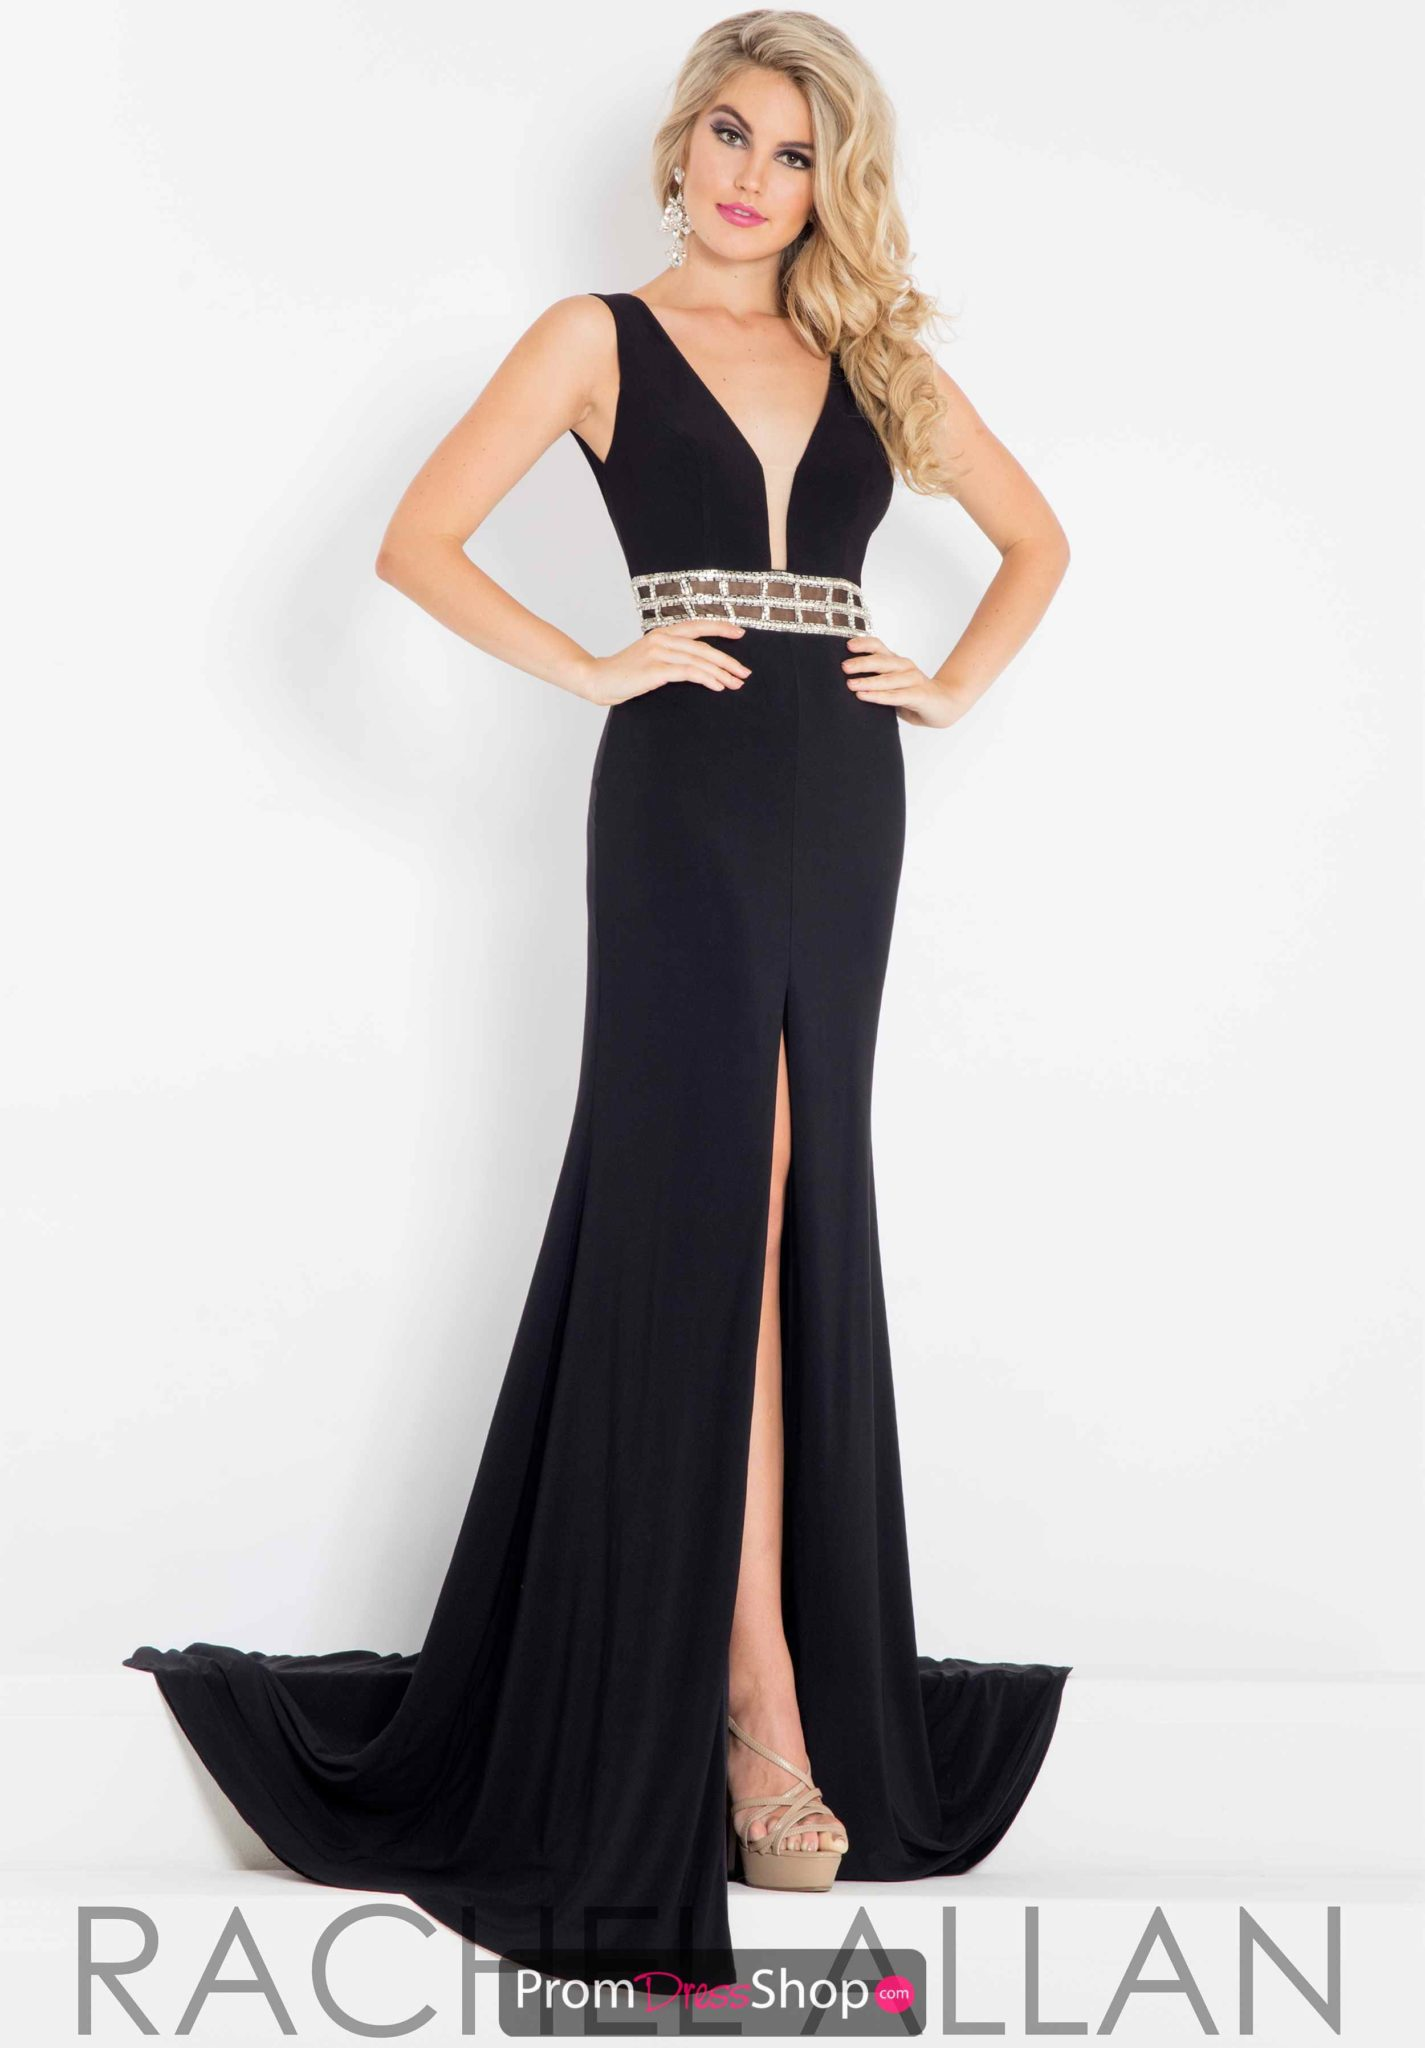 3071c7ddc11 A Curvy Girl s Prom Dress Guide